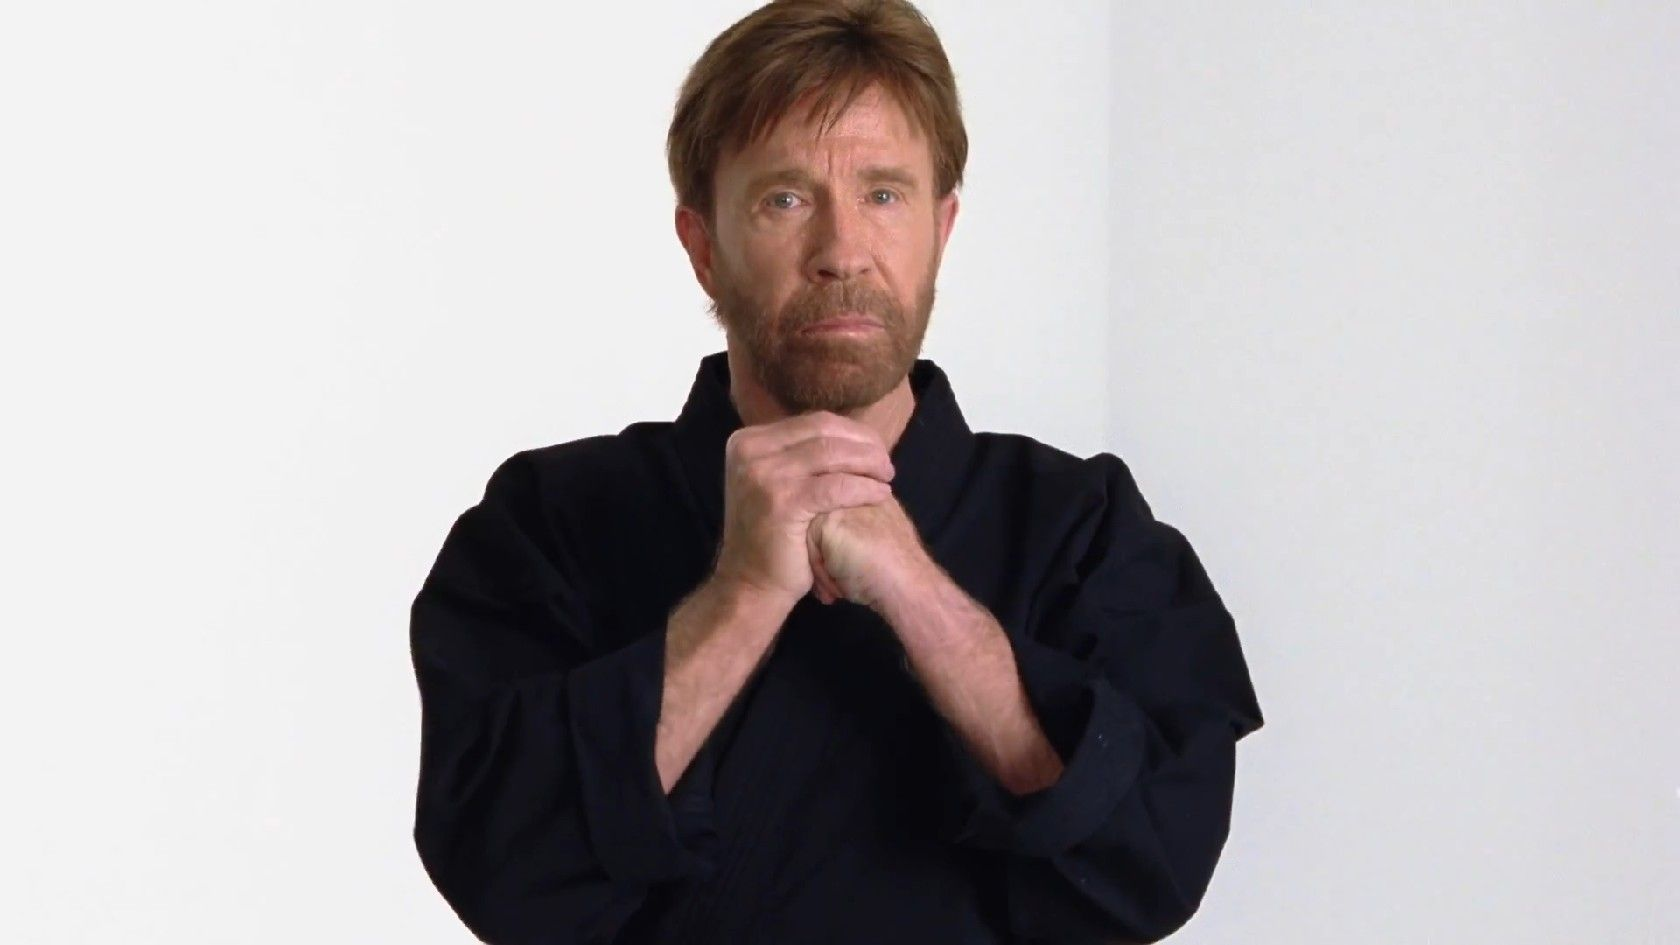 2. Chuck Norris Wins Every Fight